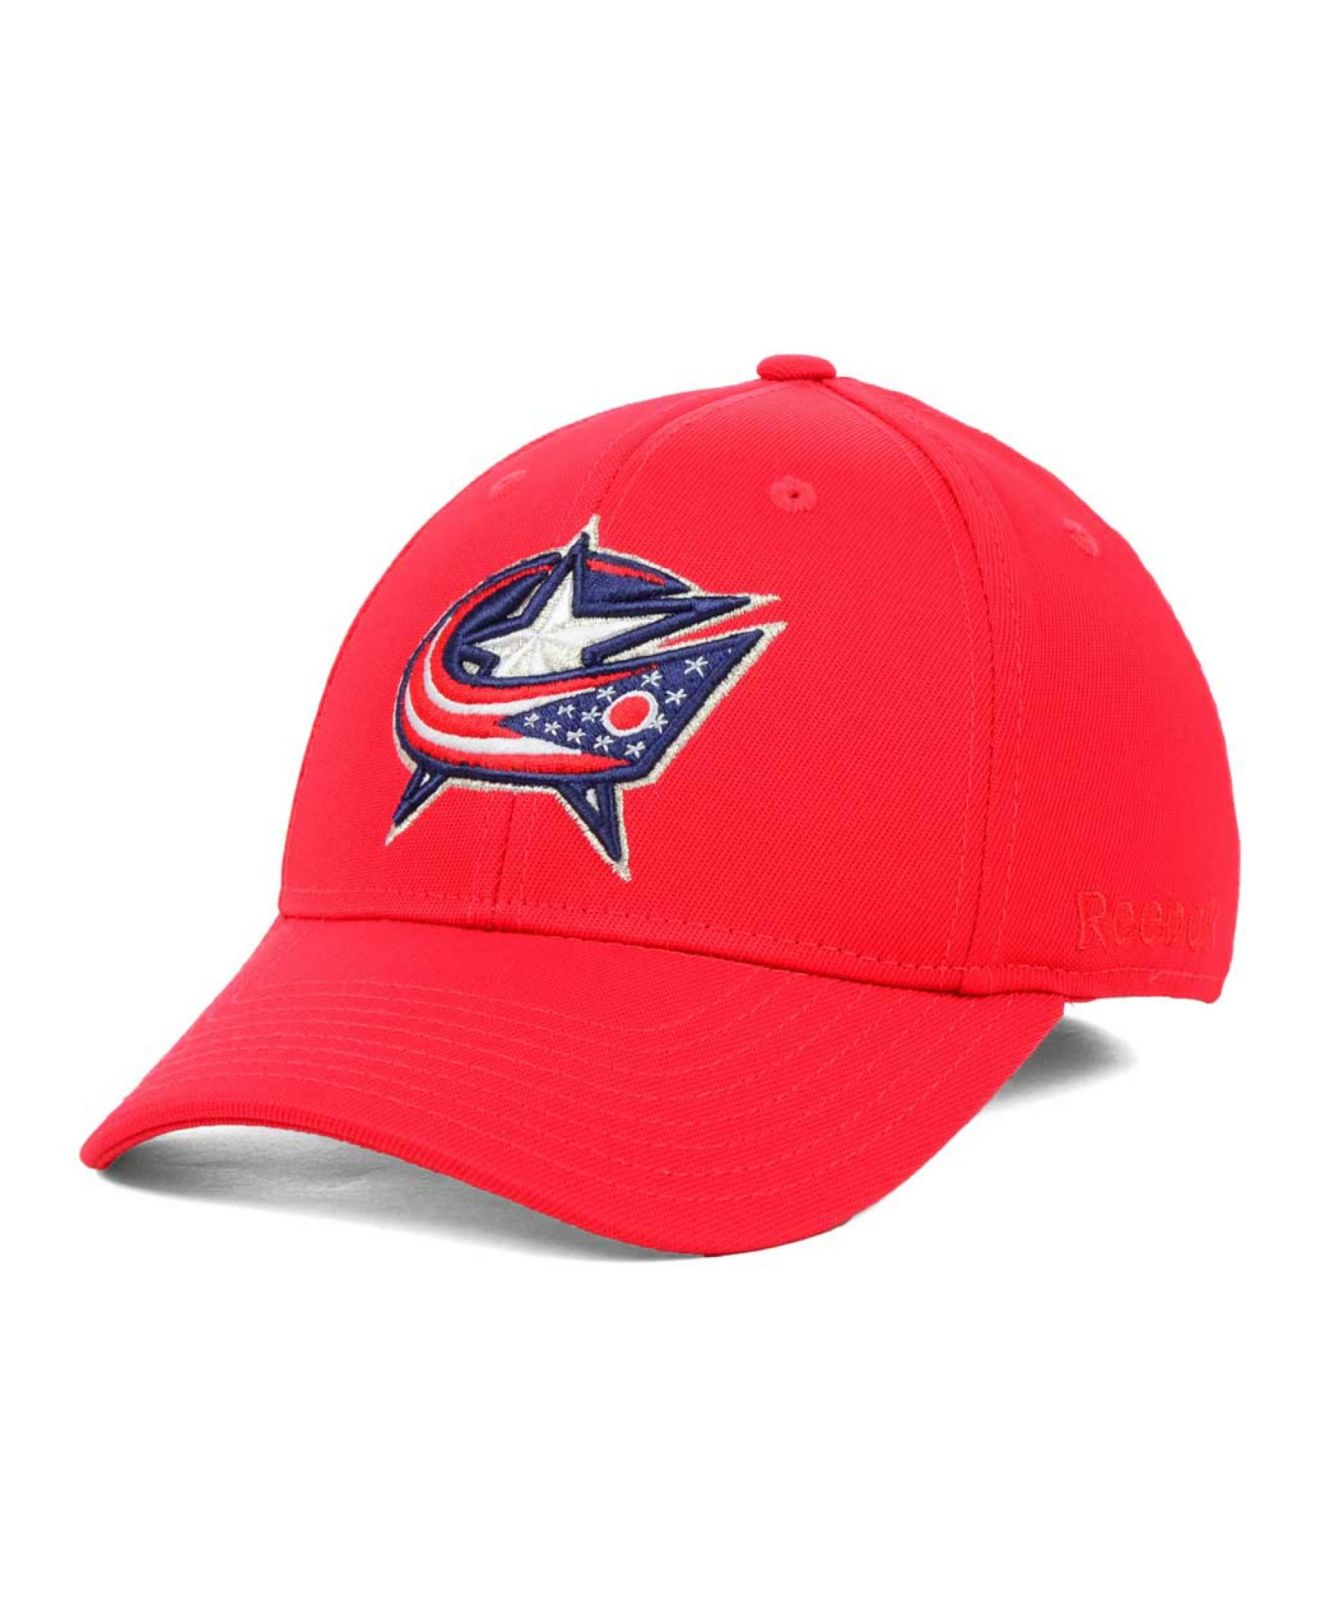 7bd8d2a5785 Lyst - Reebok Columbus Blue Jackets Hat Trick Cap In Red For Men